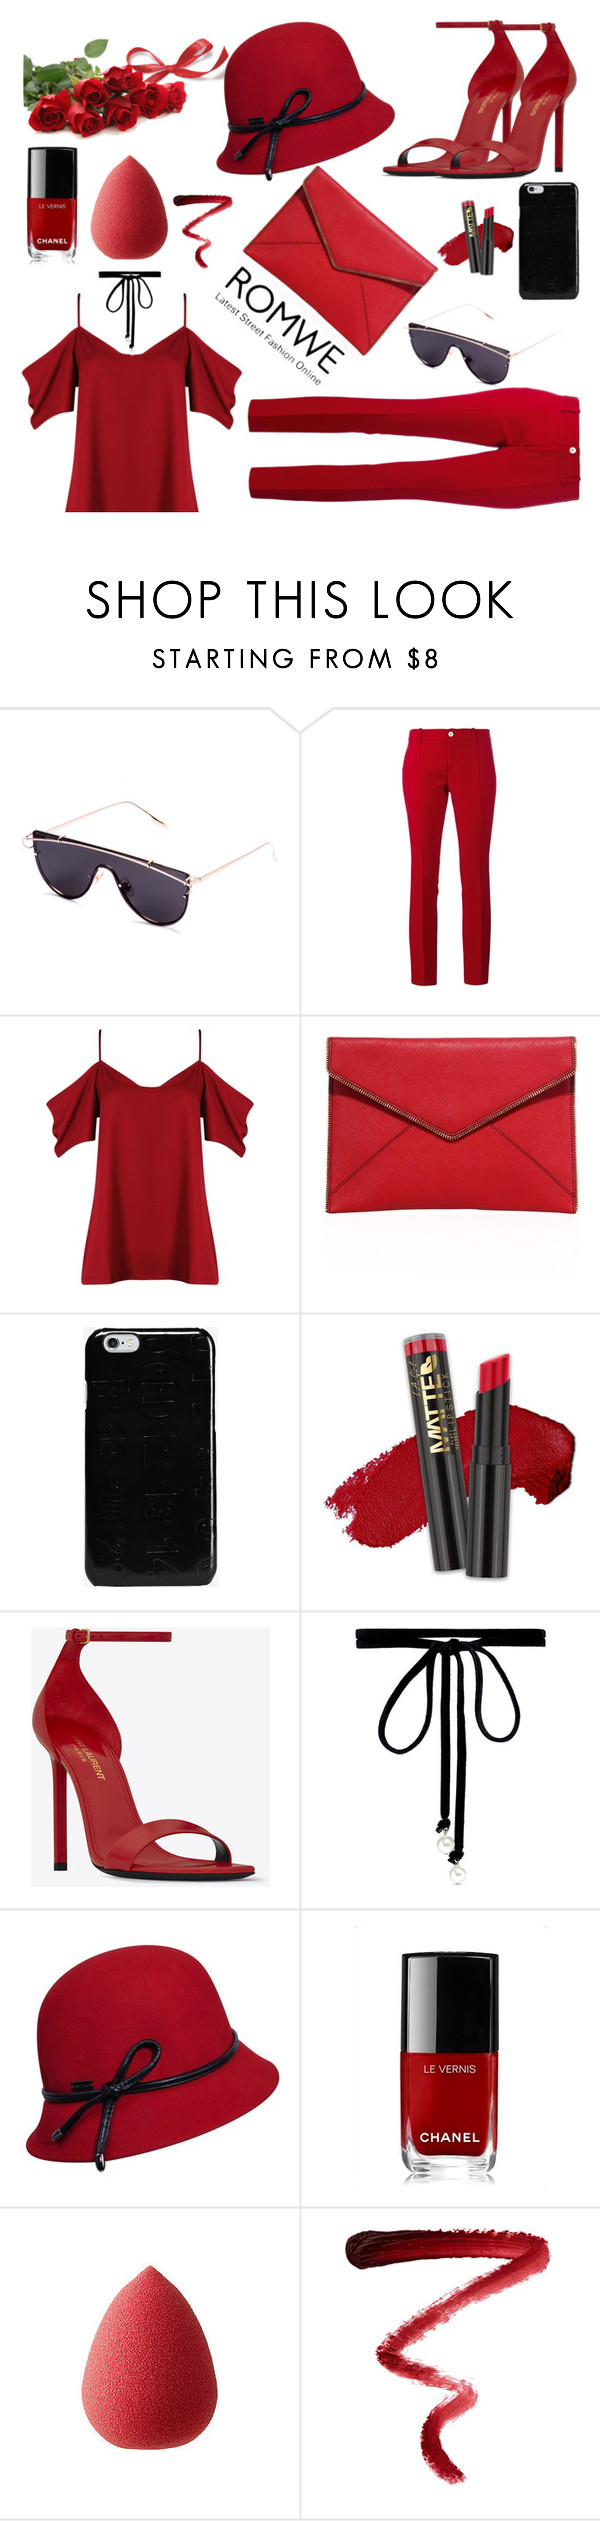 """all red"" by anay05 ❤ liked on Polyvore featuring Gucci, Boohoo, Rebecca Minkoff, Maison Margiela, Yves Saint Laurent, Joomi Lim, Betmar, Chanel, beautyblender and Ellis Faas"